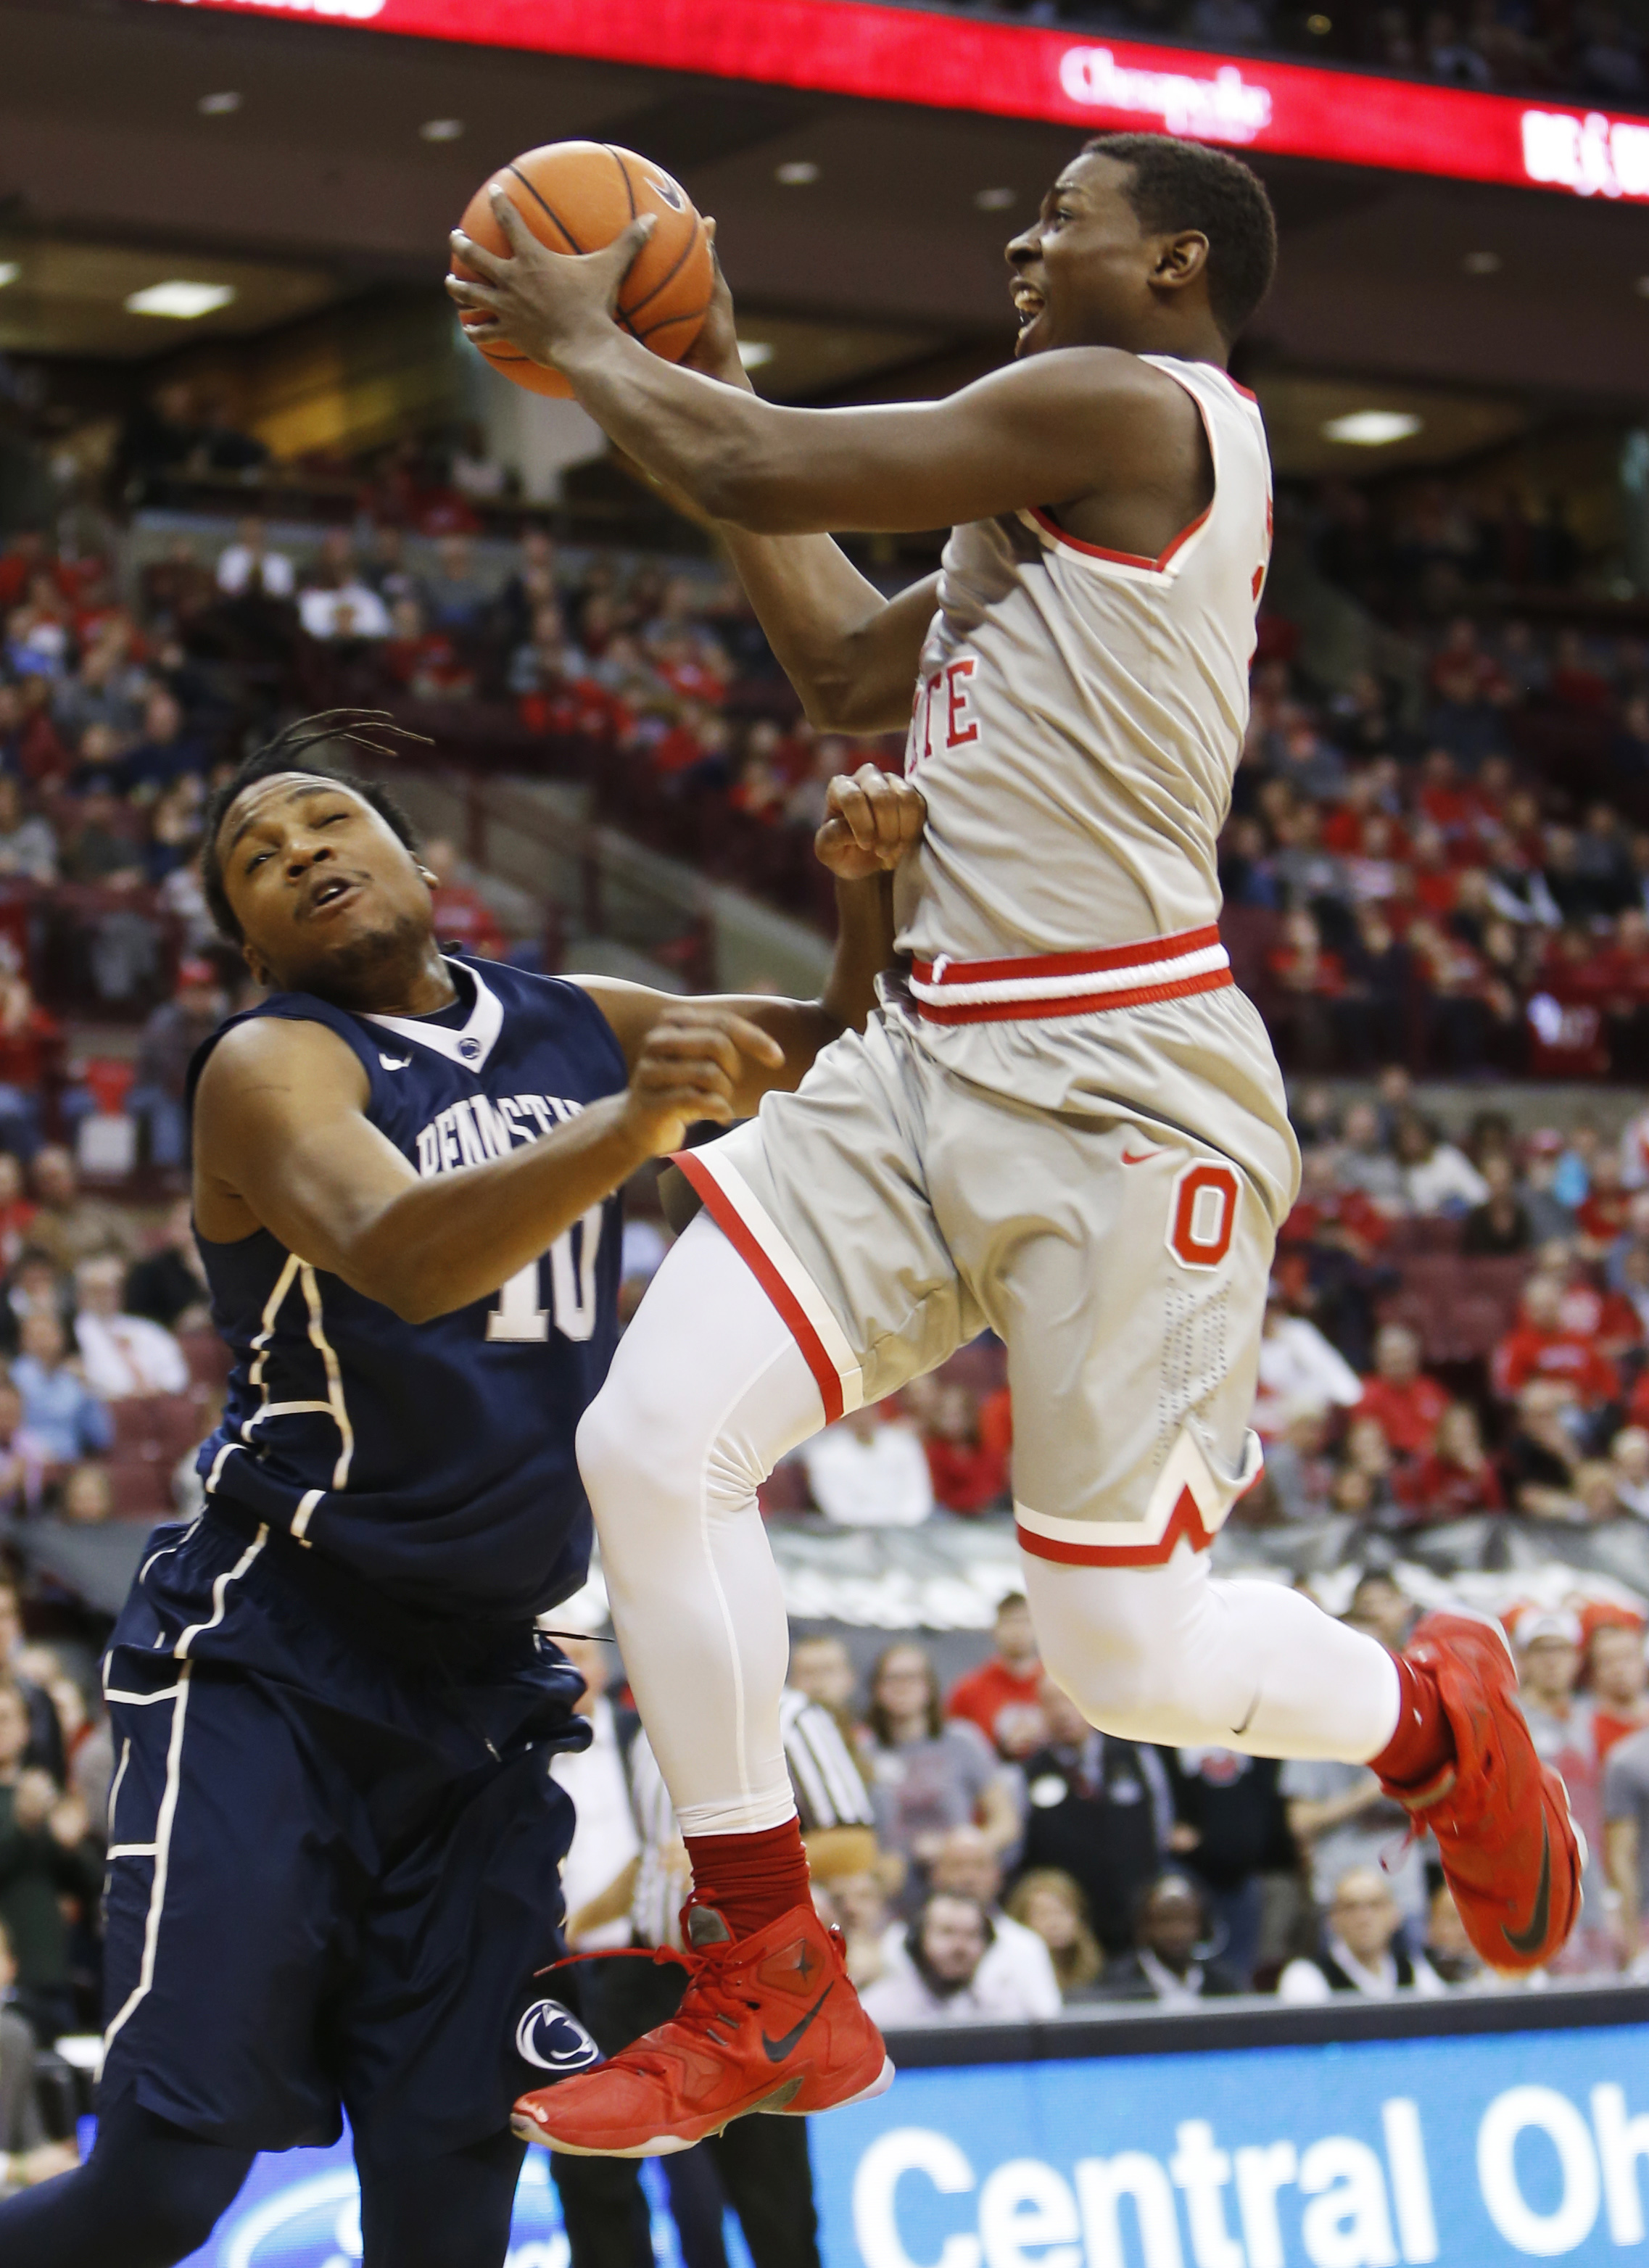 Ohio State's Jai'Sean Tate, right, shoots the ball as Penn State's Brandon Taylor defends during the second half of an NCAA college basketball game Monday, Jan. 25, 2016, in Columbus, Ohio. Ohio State beat Penn State 66-46. (AP Photo/Jay LaPrete)